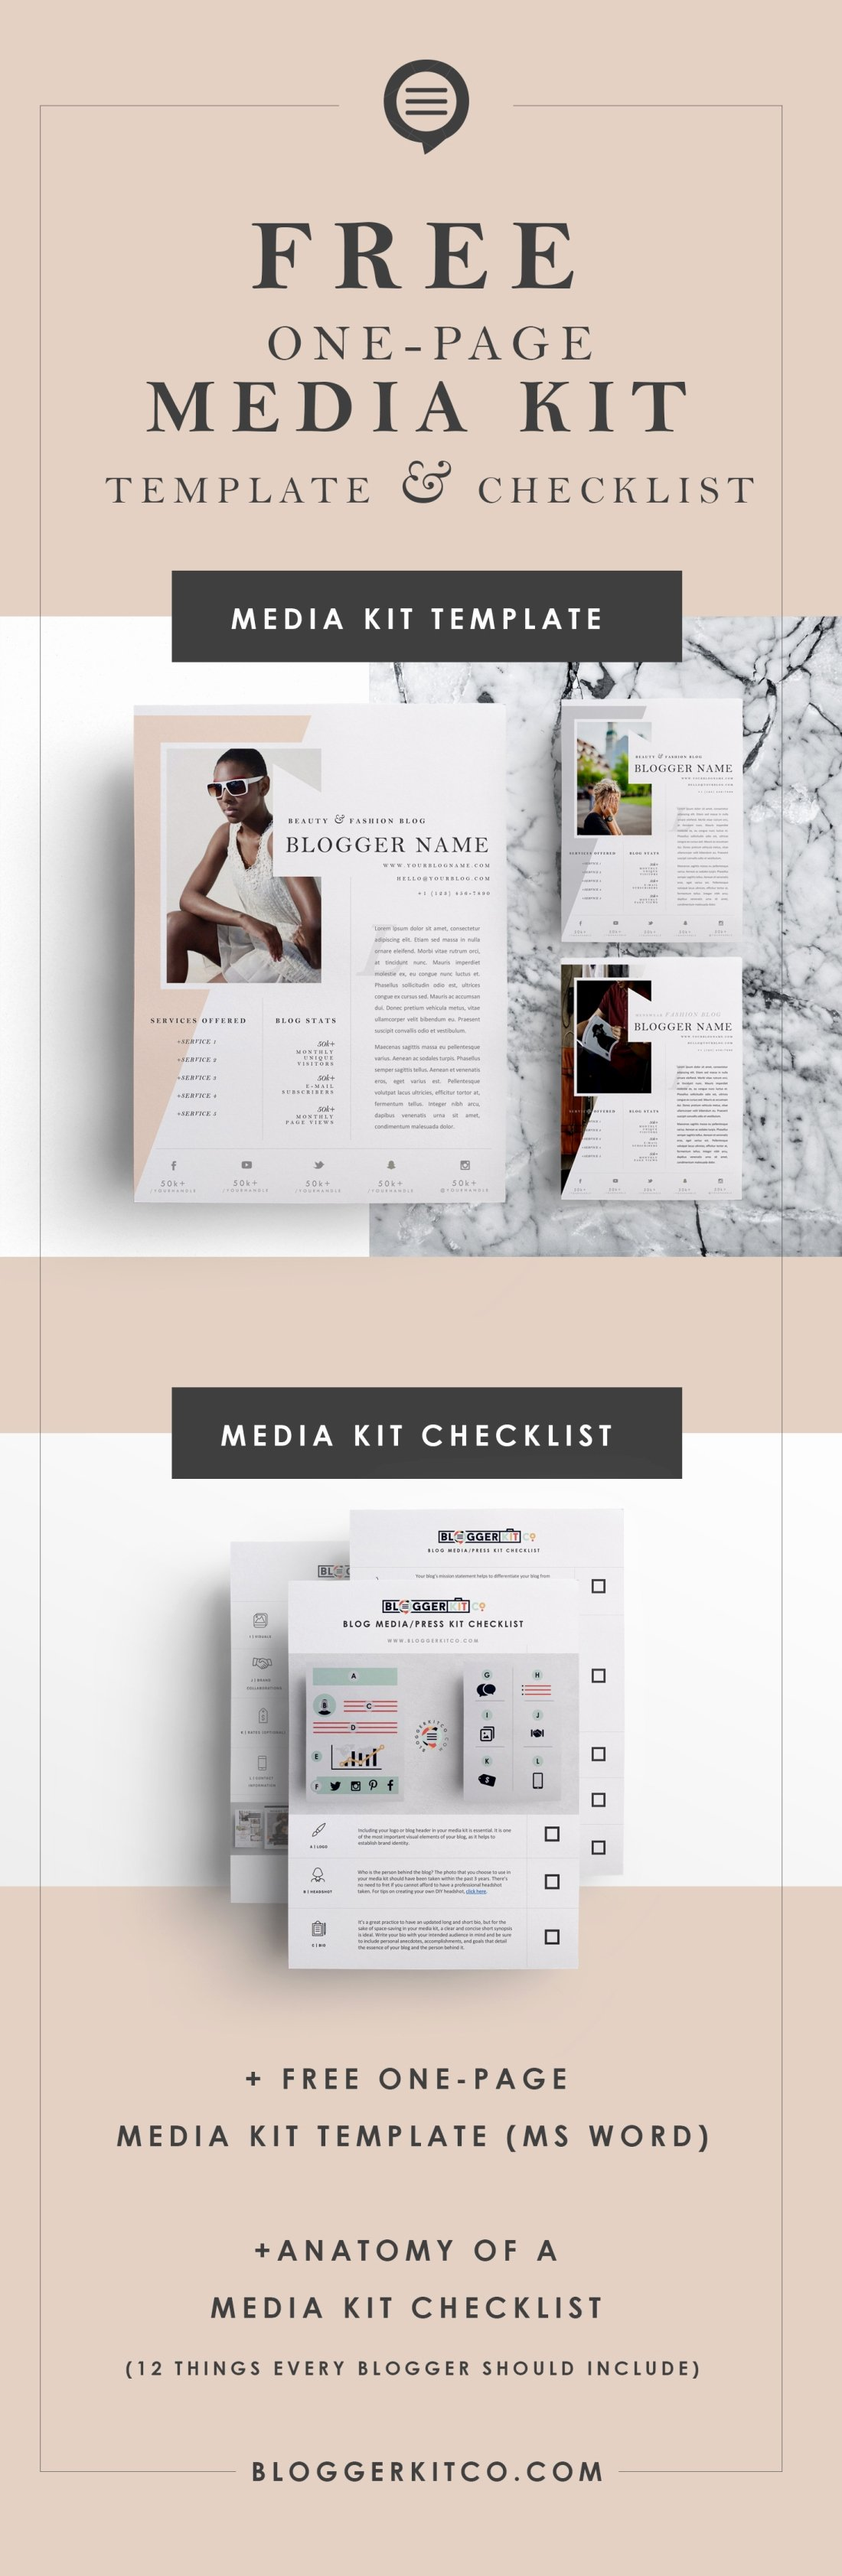 Press Kit Template Free Best Of Anatomy Of A Media Kit What Every Blogger Should Include